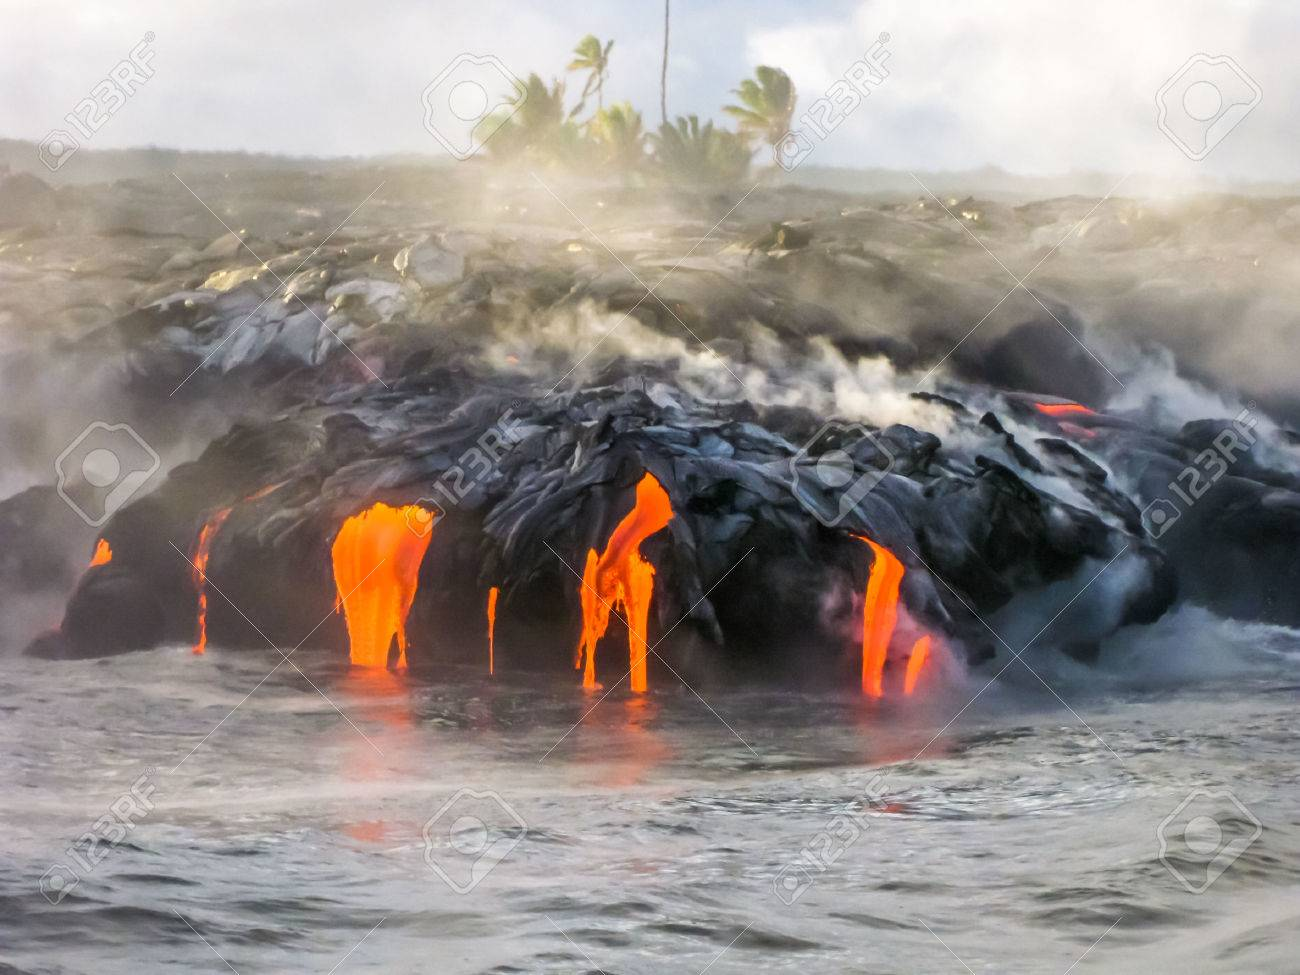 Sea view of Kilauea Volcano in Big Island, Hawaii, United States. A restless volcano that has been in business since 1983. Shot taken at sunset when the lava glows in the dark as jumps into the sea. - 47790757